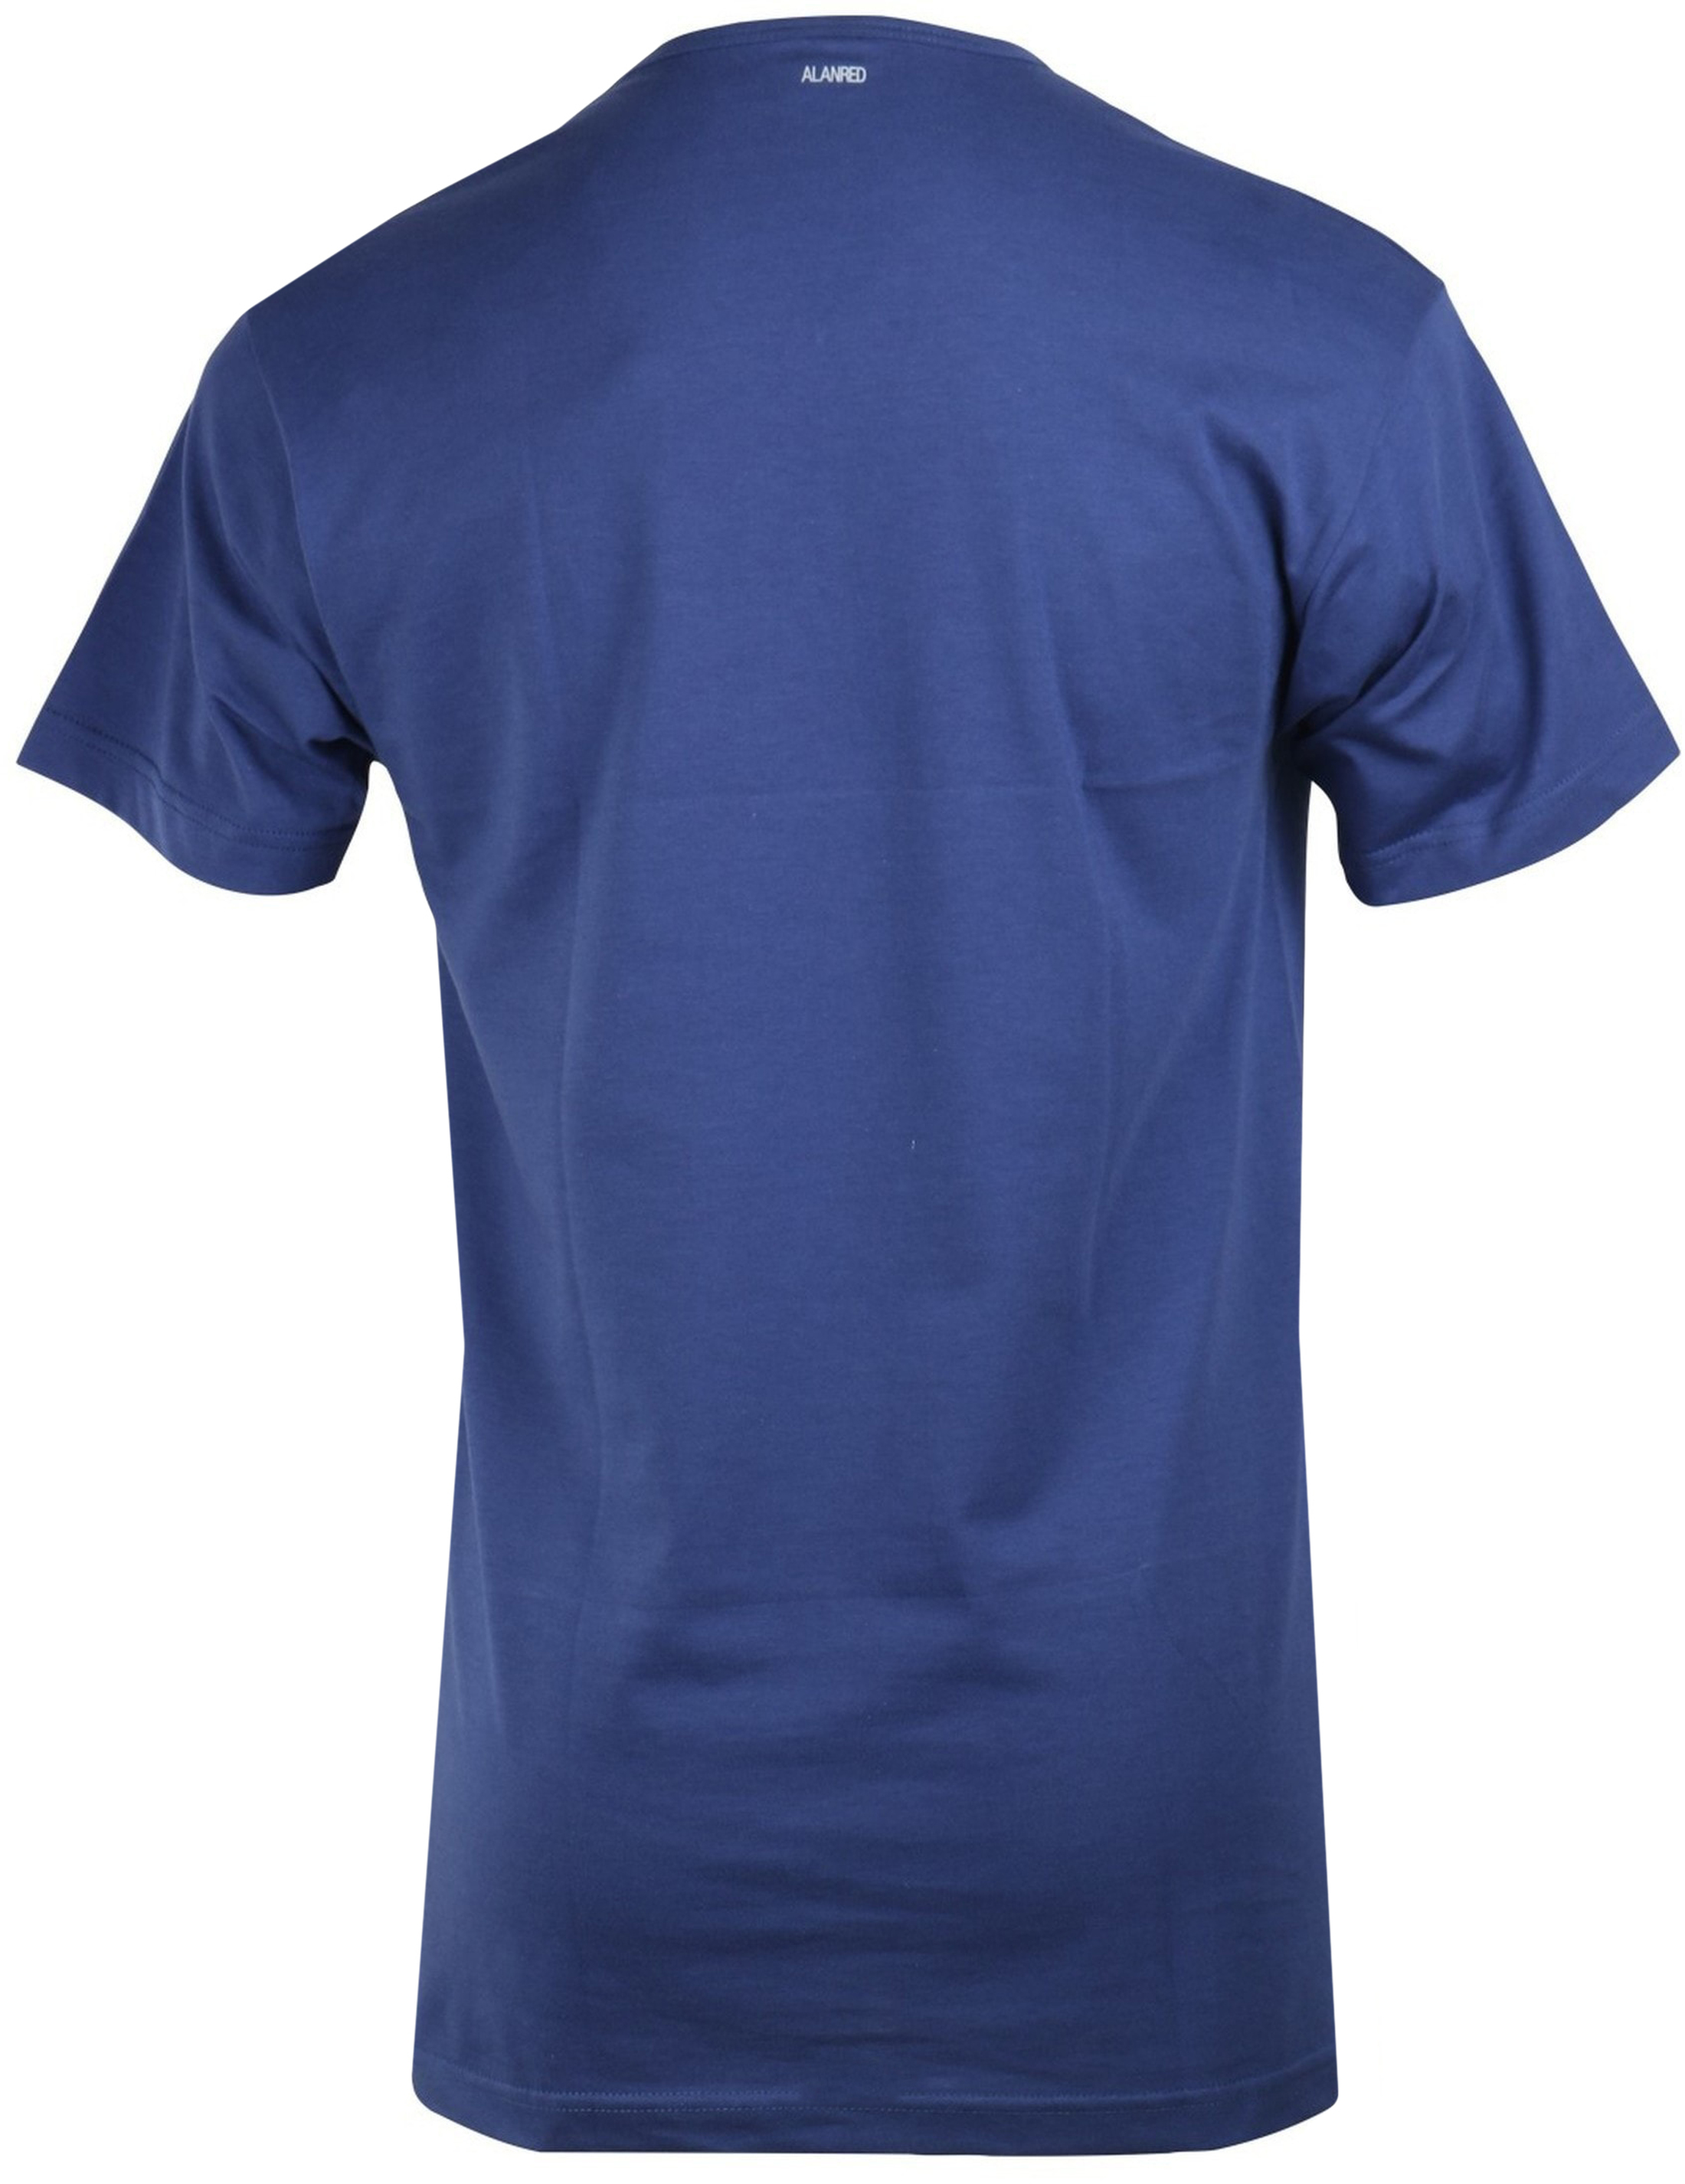 Alan Red Vermont T-shirt V-Neck Ultramarine 1-Pack foto 2